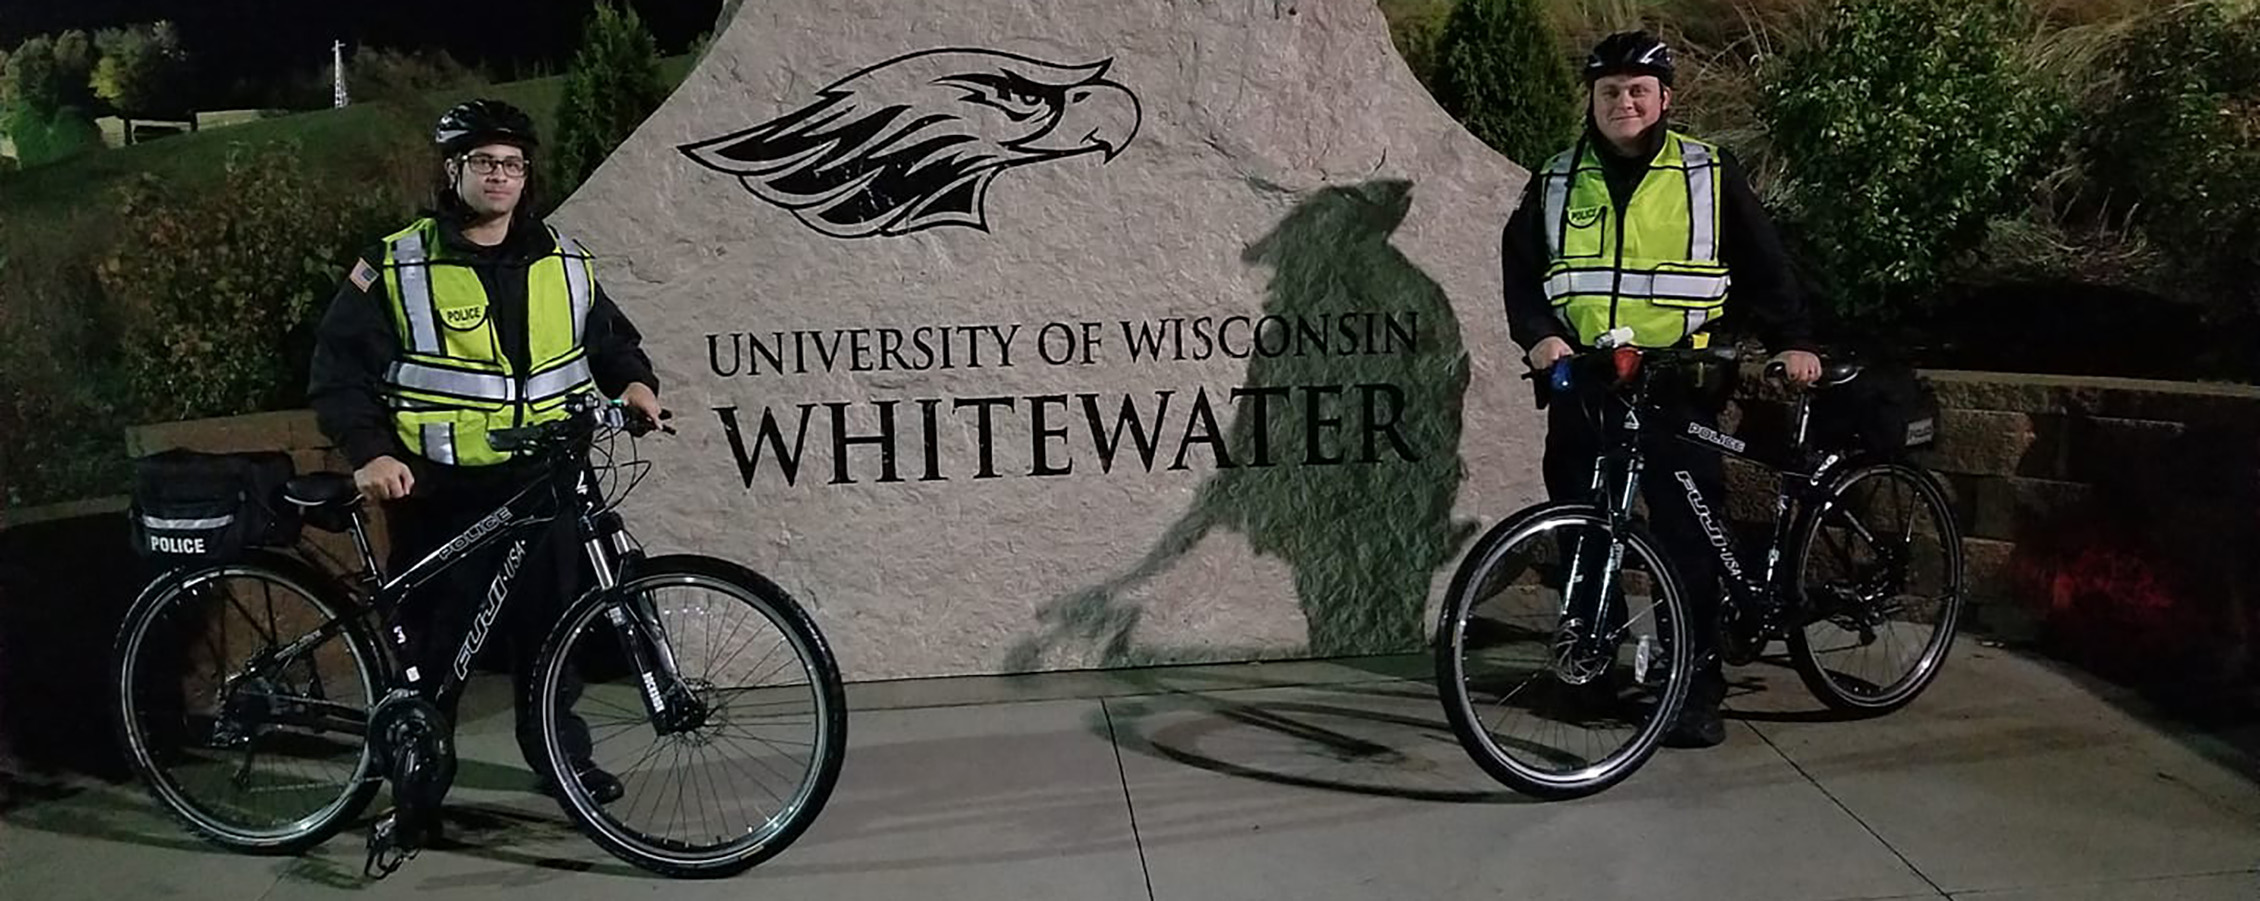 UW-Whitewater Police Department Information